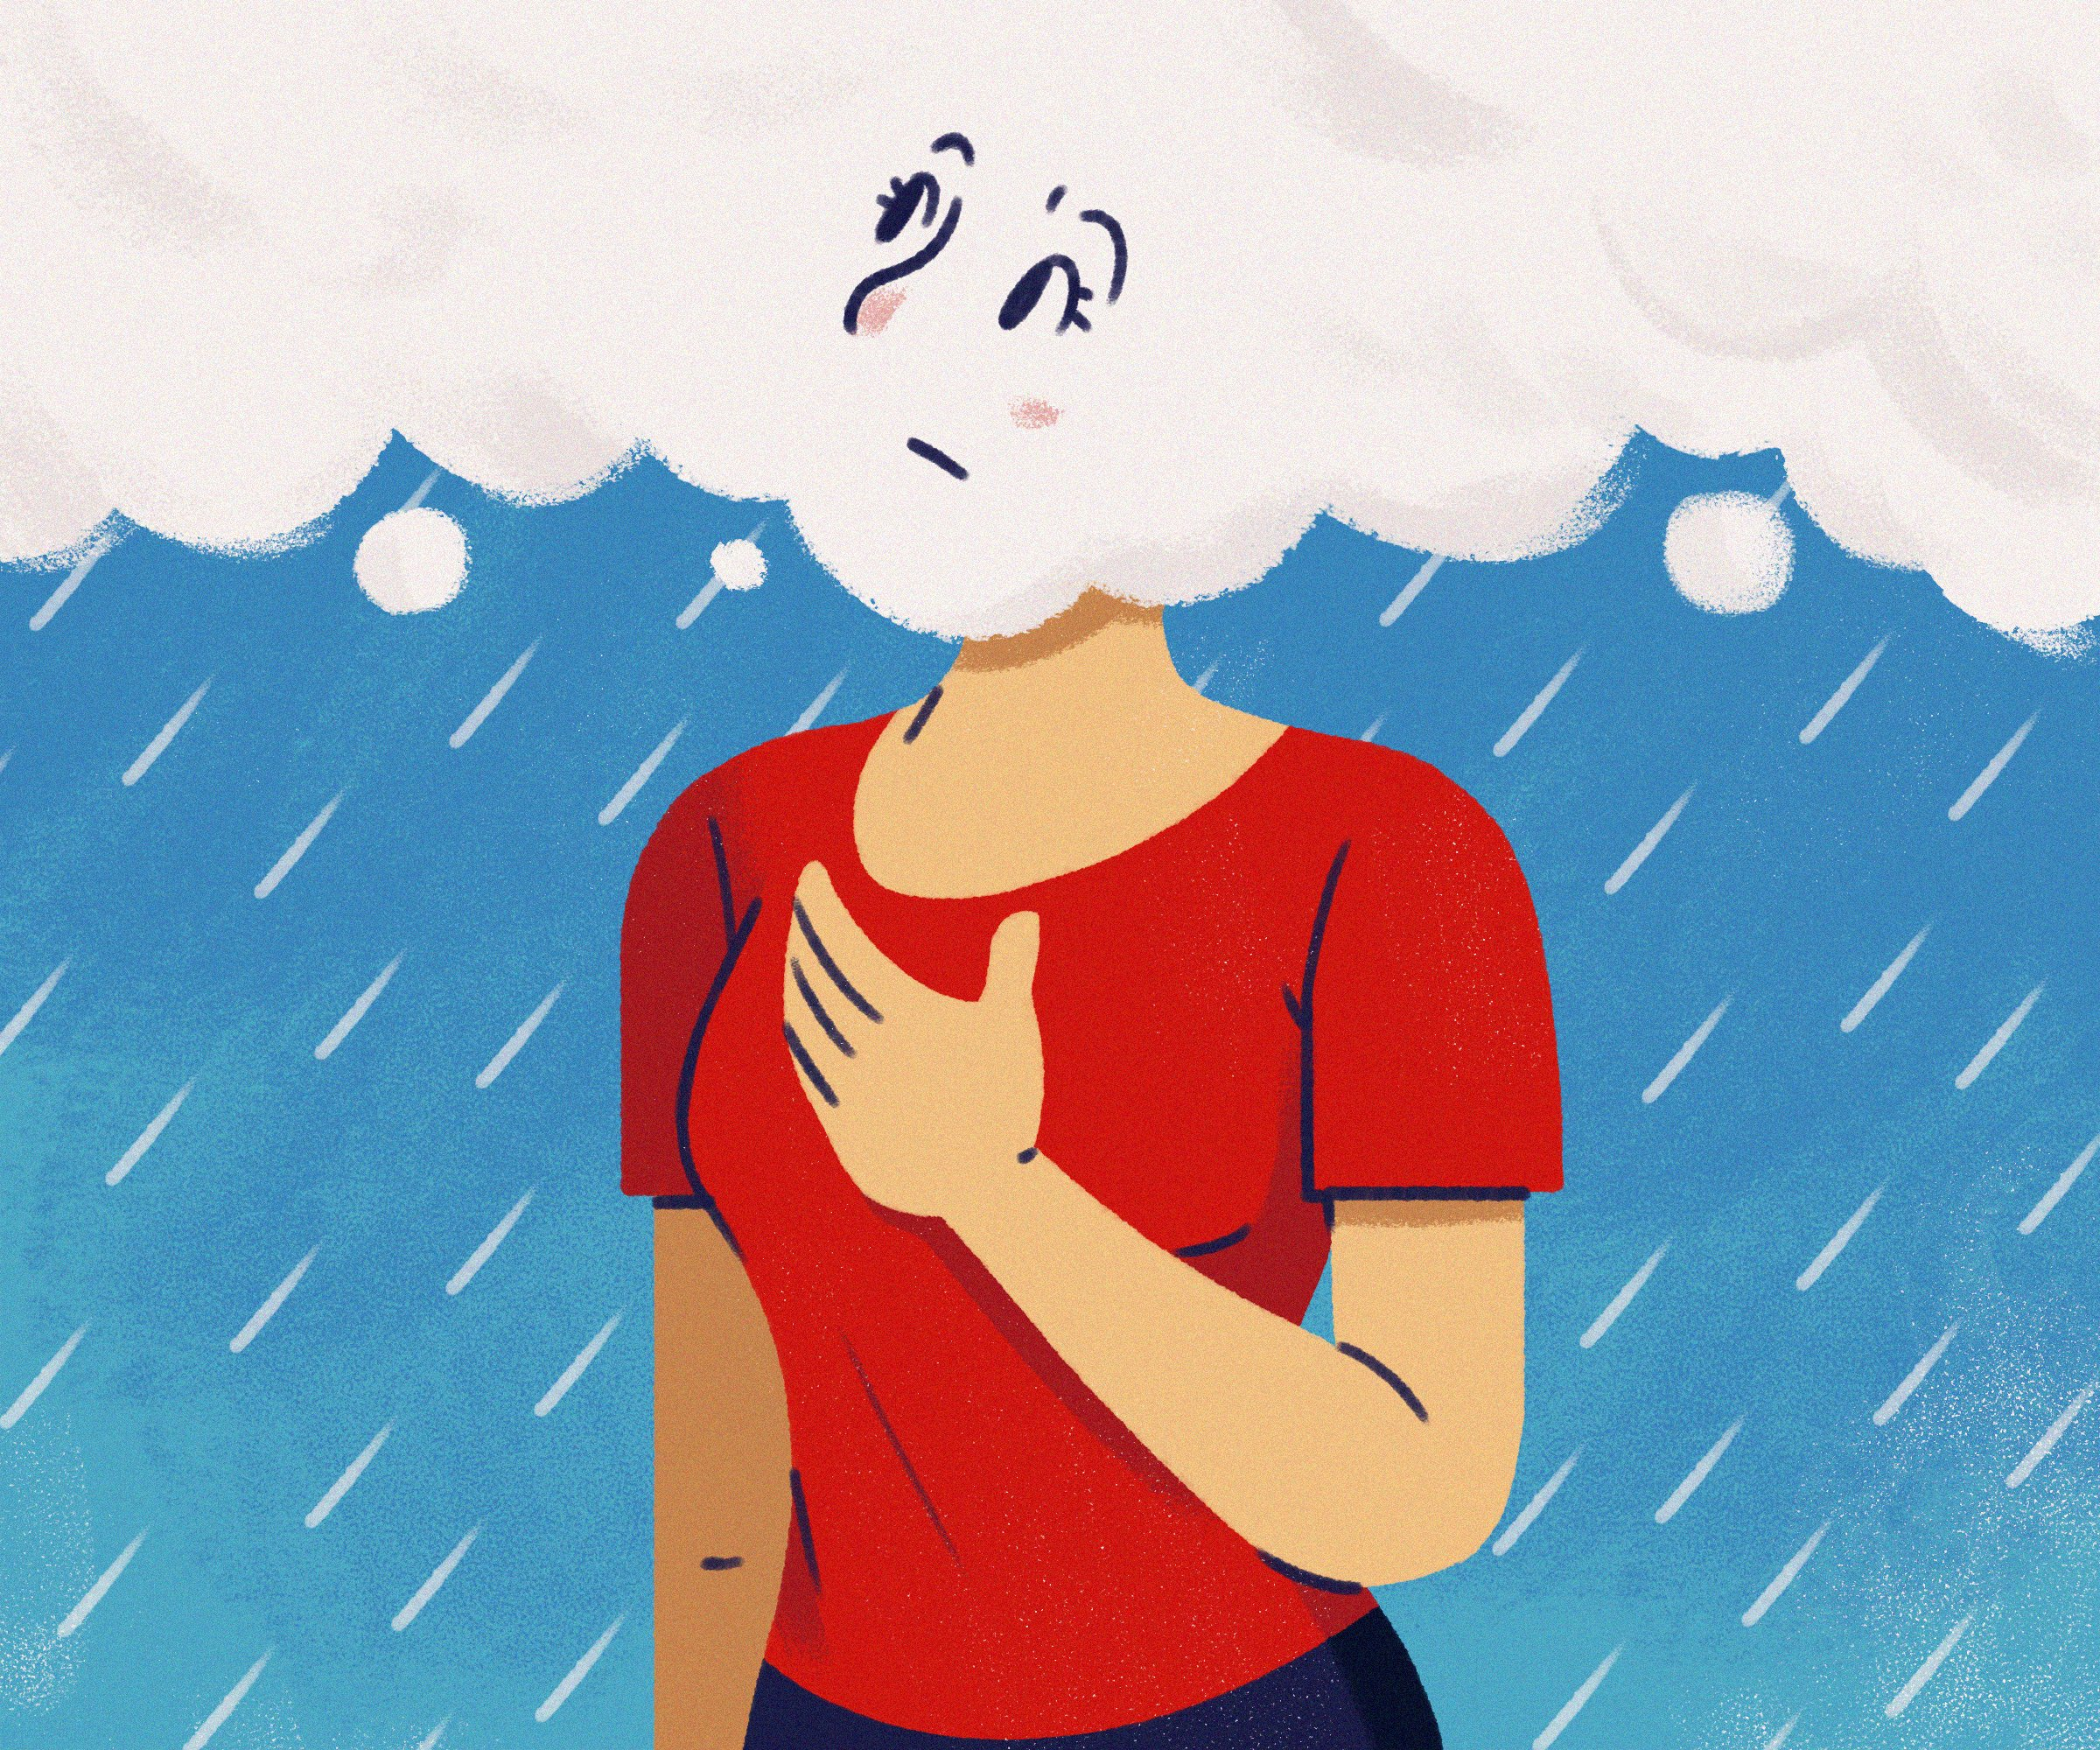 concerned woman looks at rain clouds